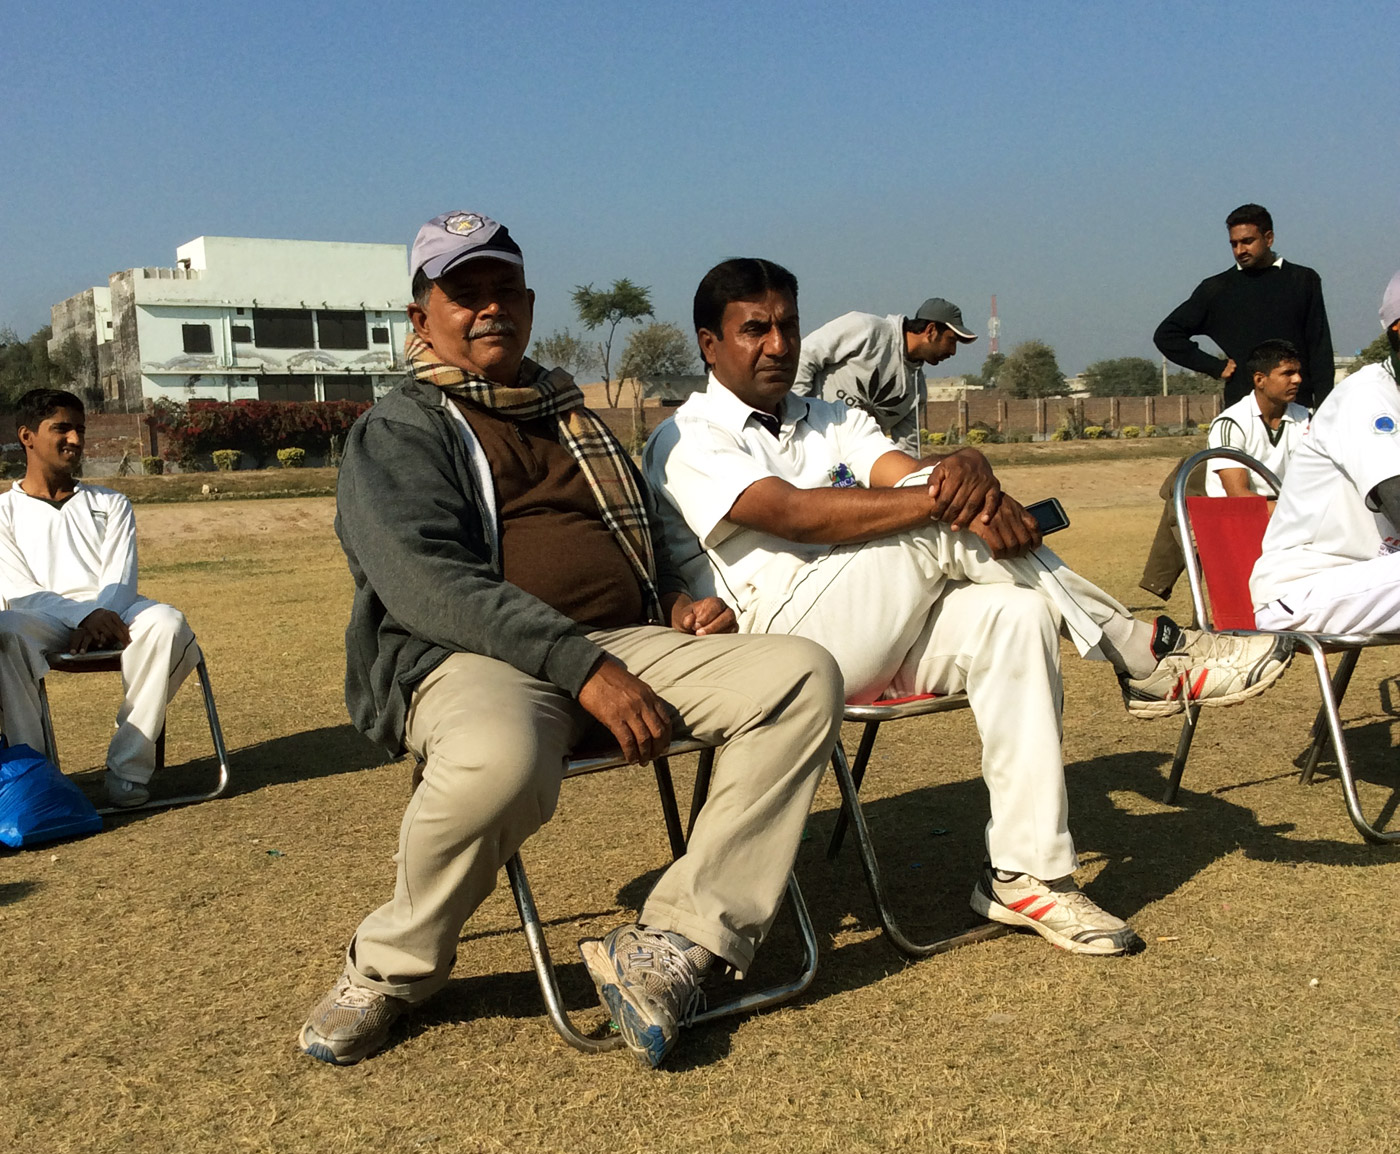 Abdul Haye (left) and Naveed Ahmad, coach and captain of Fazl-e-Umar, struggle to hold on to talented players, who move to the West in search of better lives and cricketing opportunities